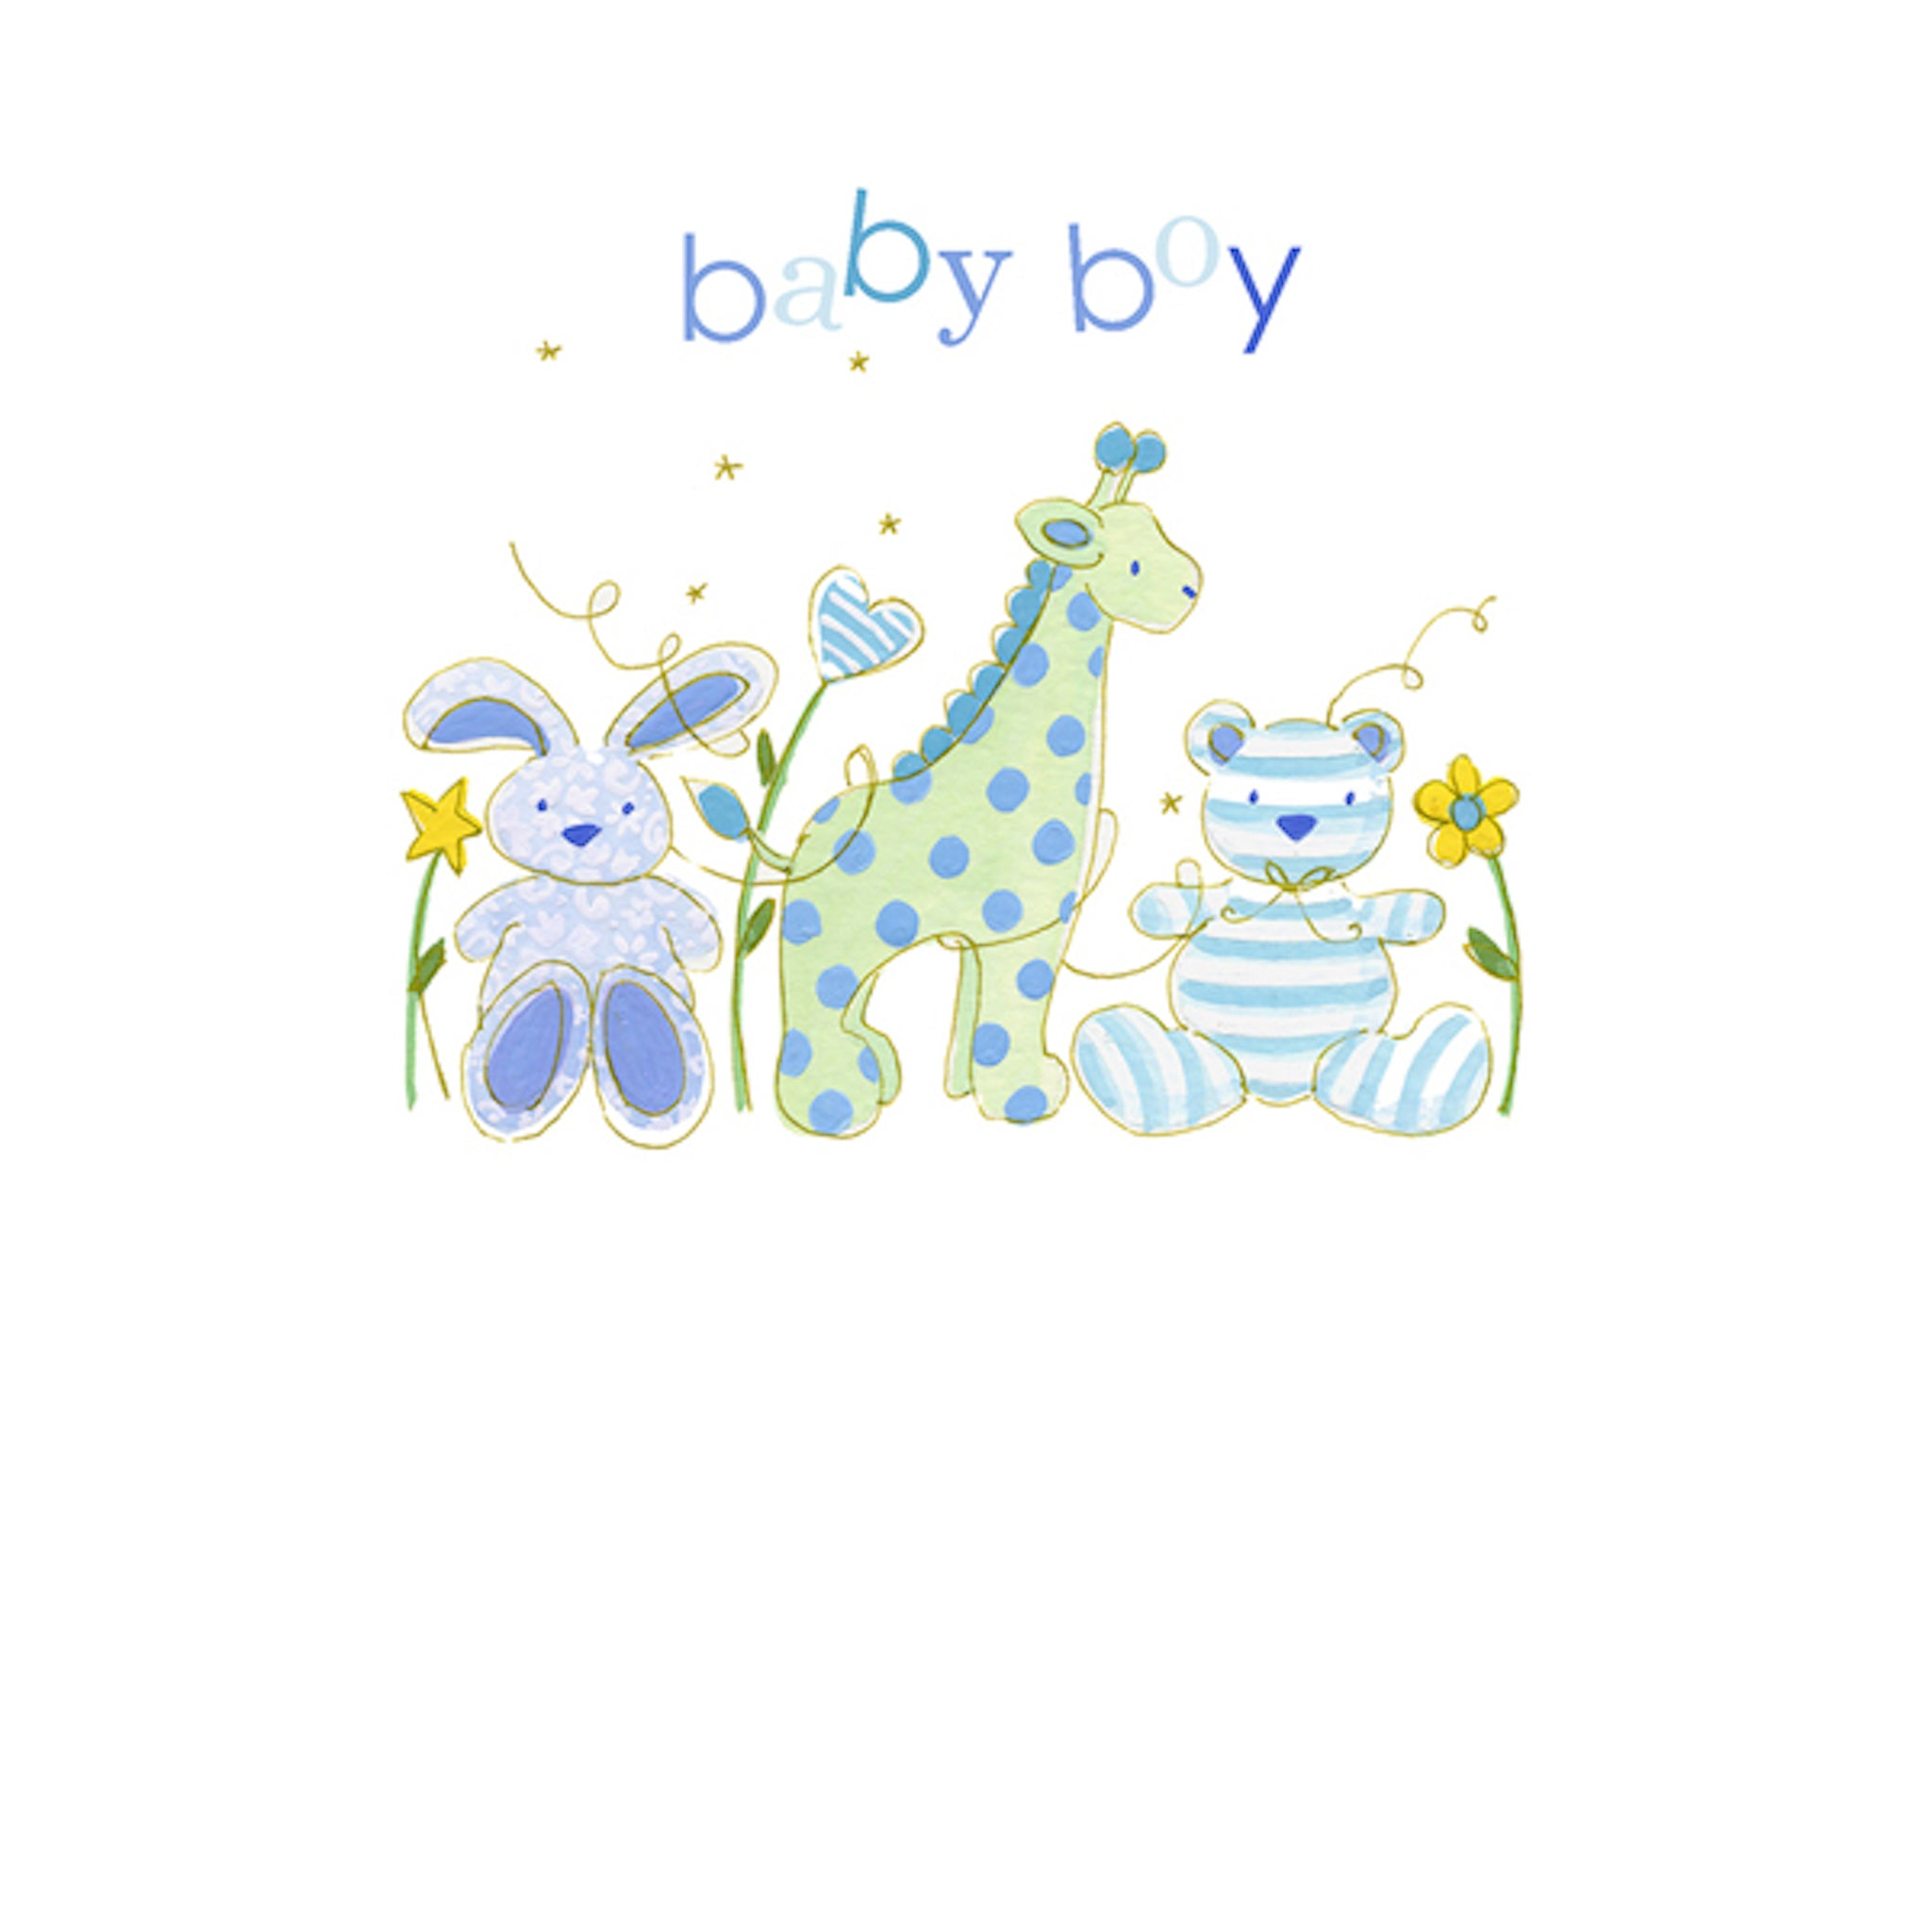 Baby boy greeting card new baby card by hammond gower mini me baby boy greeting card for new baby by hammond gower new baby card m4hsunfo